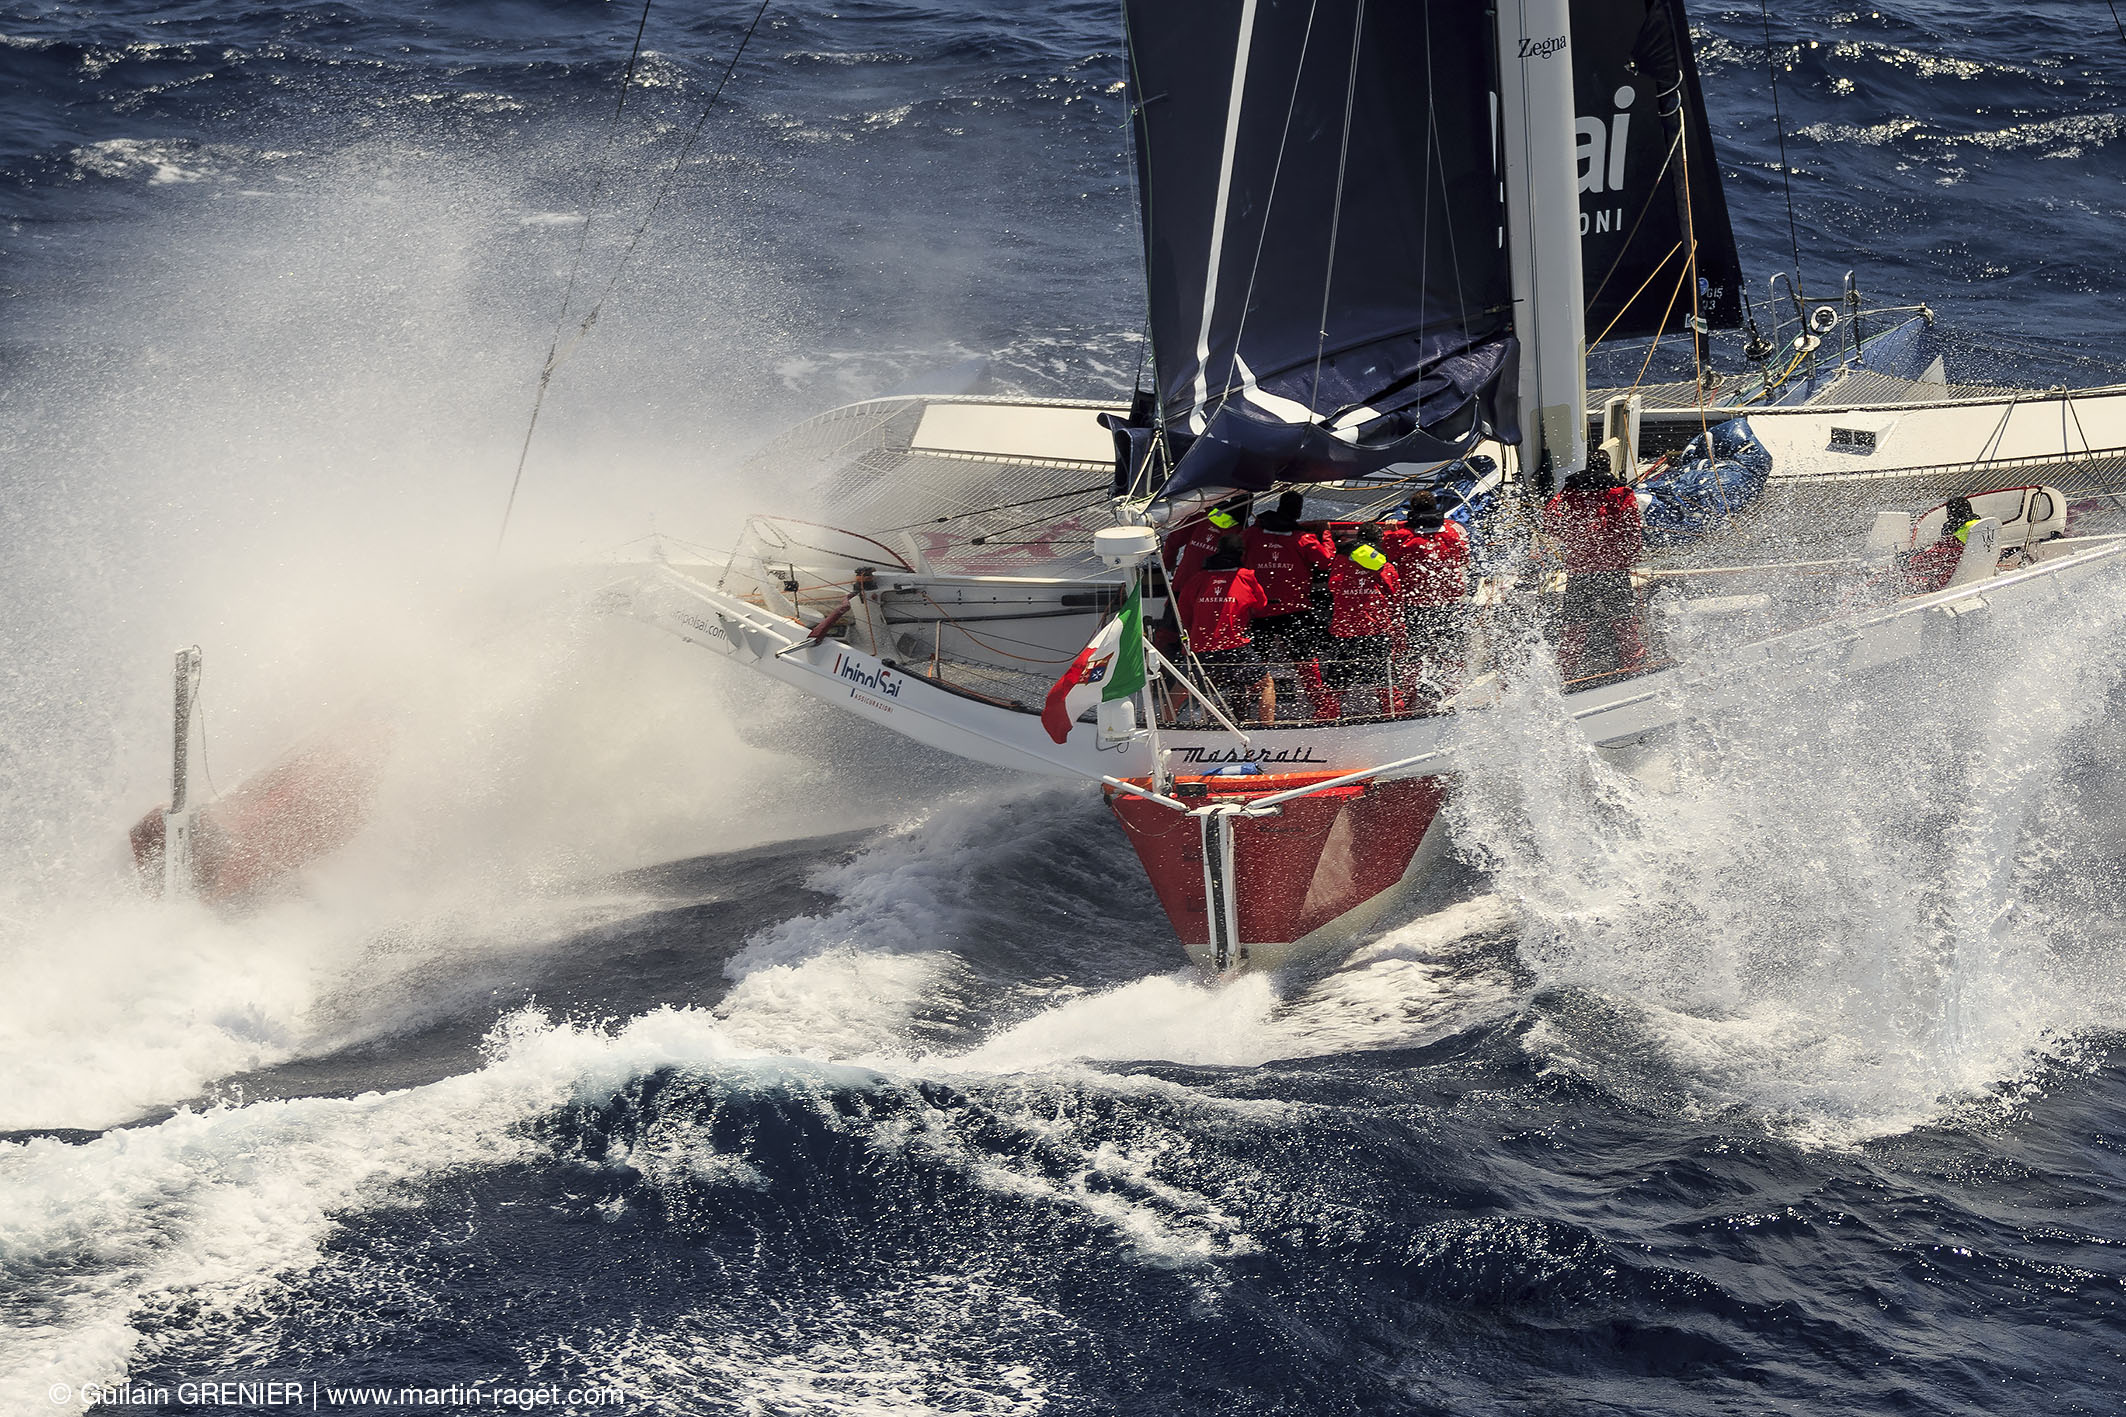 First time across the Atlantic with the new foils for Giovanni Soldini's MOD70, Maserati  © Guilain Grenier/www.martin-raget.com